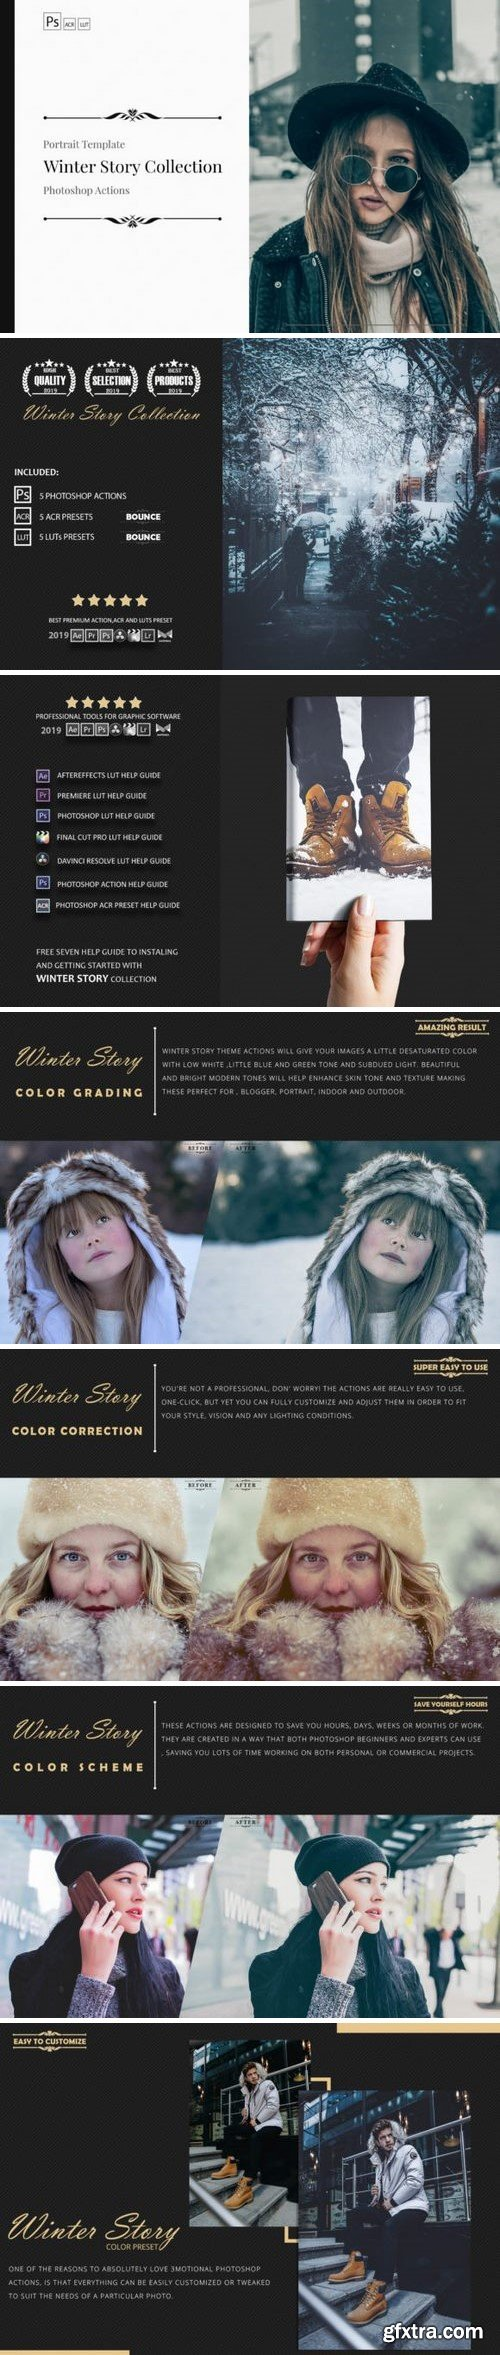 Thehungryjpeg - Neo Winter Story Color Grading photoshop actions 3524667